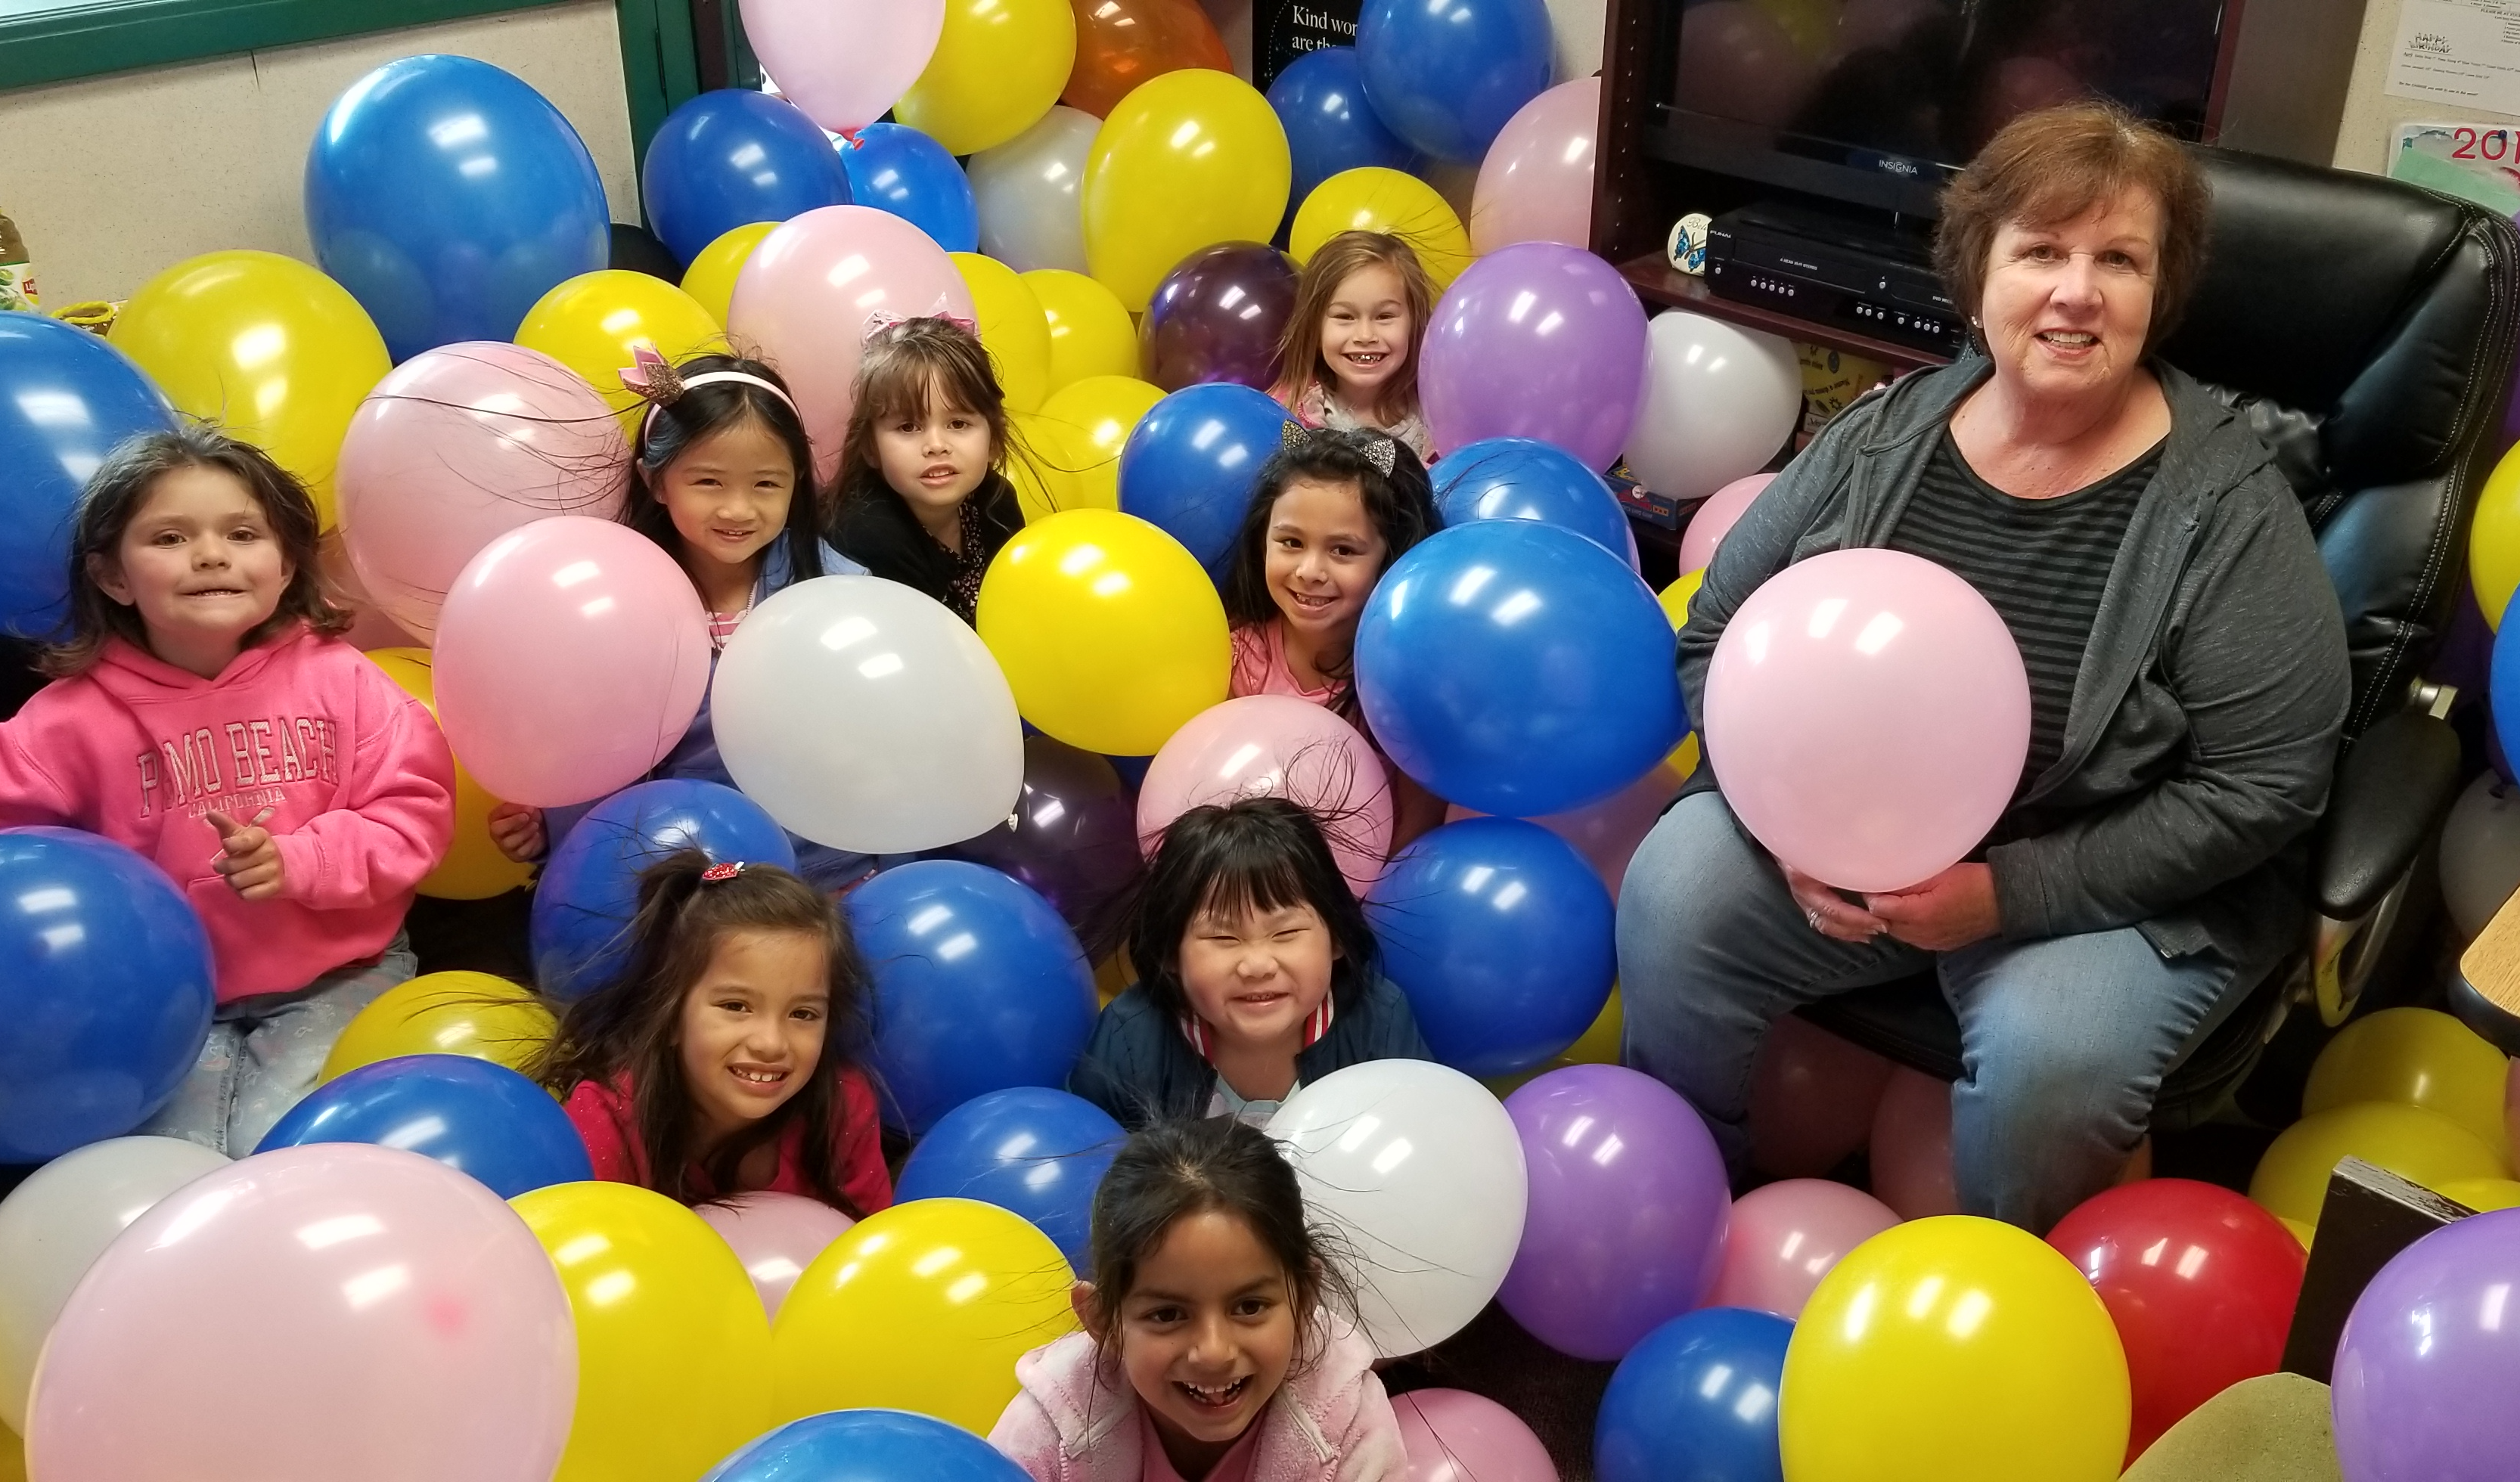 Counselor and  students surrounded by balloons.